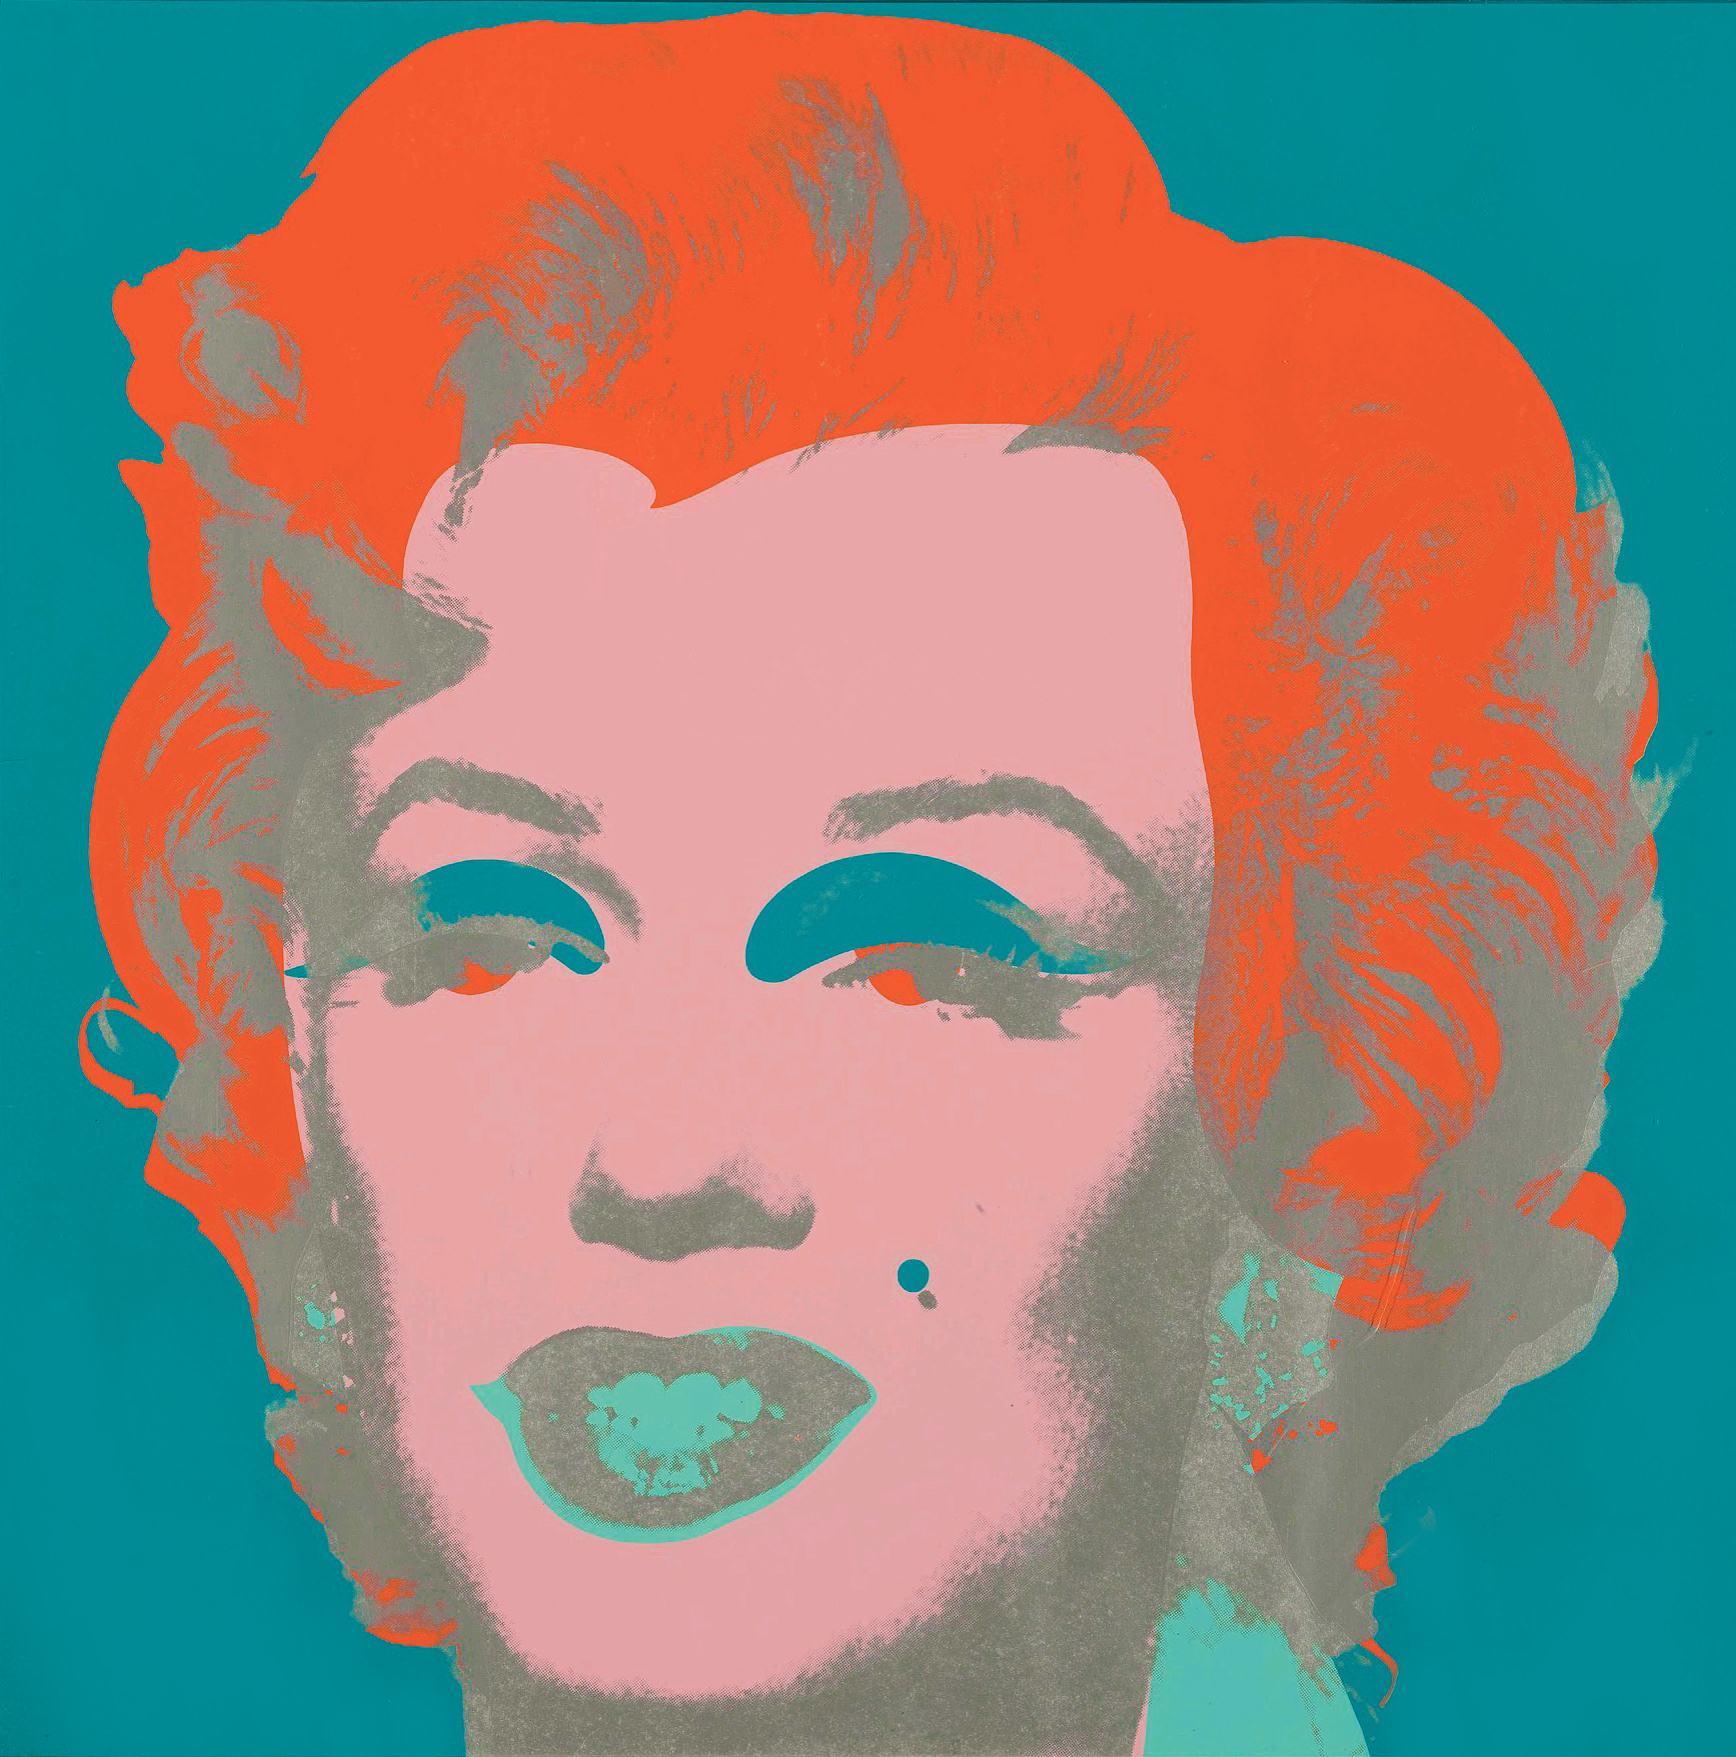 Marilyn Pop Art Andy Warhol Andy Warhol Marilyn Monroe Marilyn 1967 Screen Print